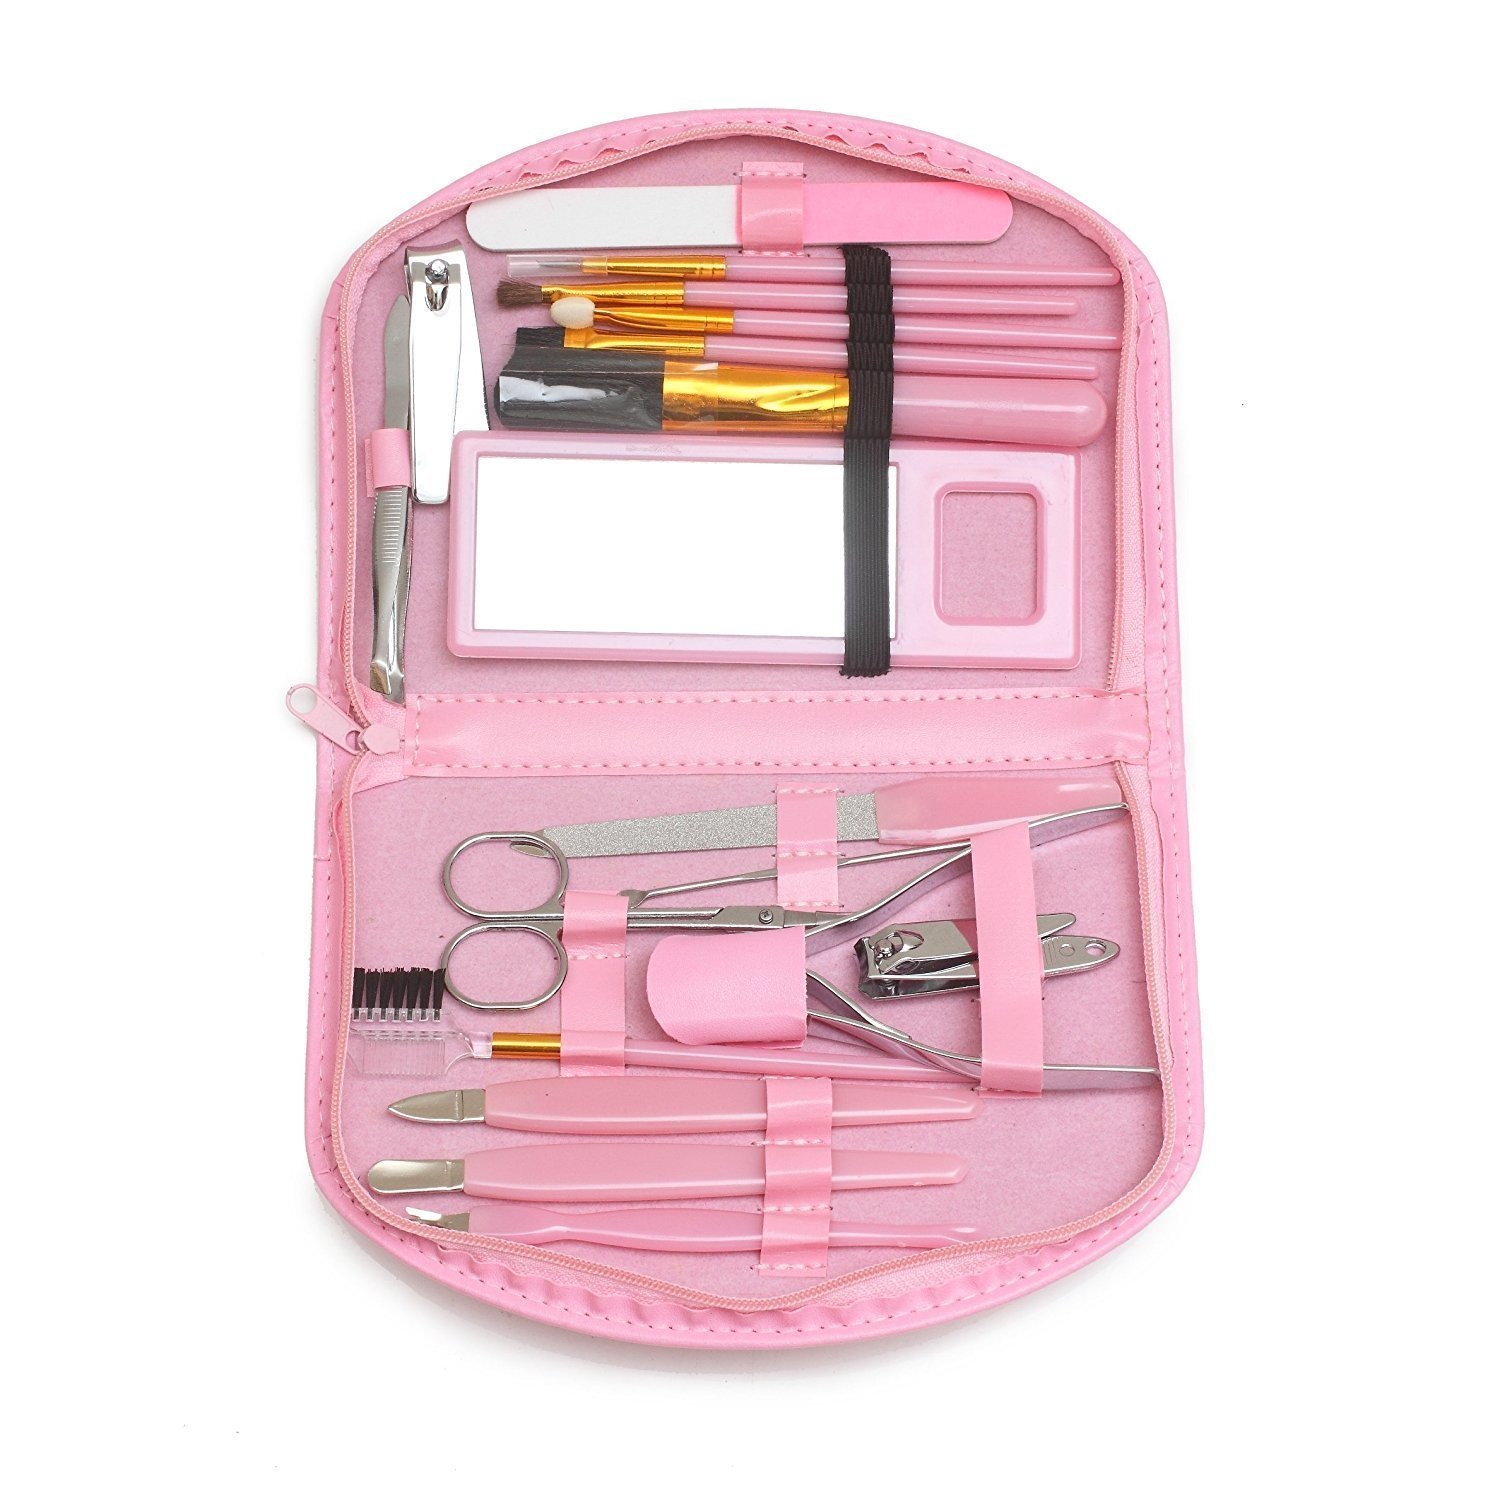 Manicure Pedicure Grooming Set Kit For Women